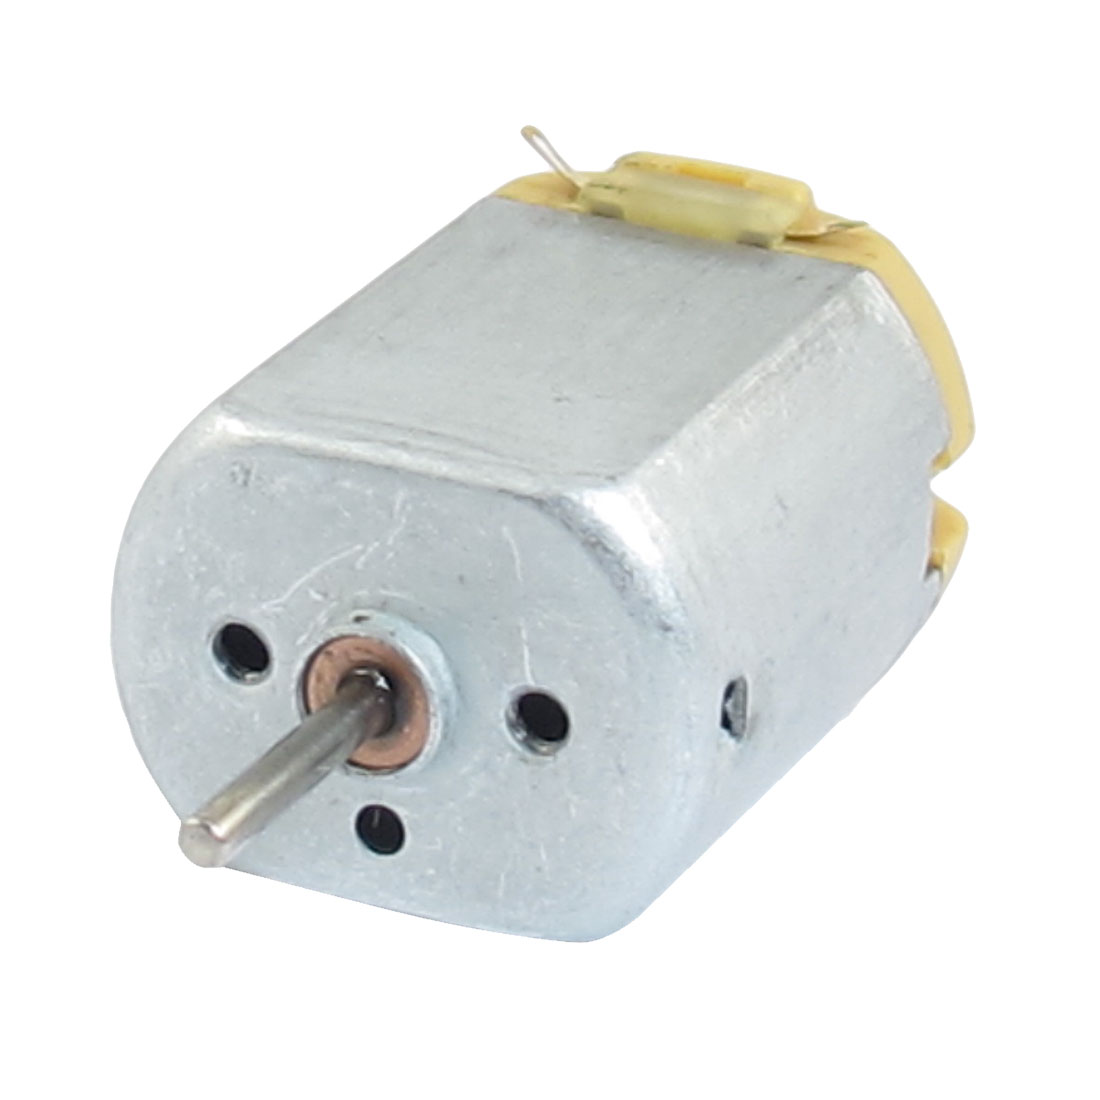 Uxcell(R) 9V DC 8200RPM Long Axis Flat Electric Magnetic Motor